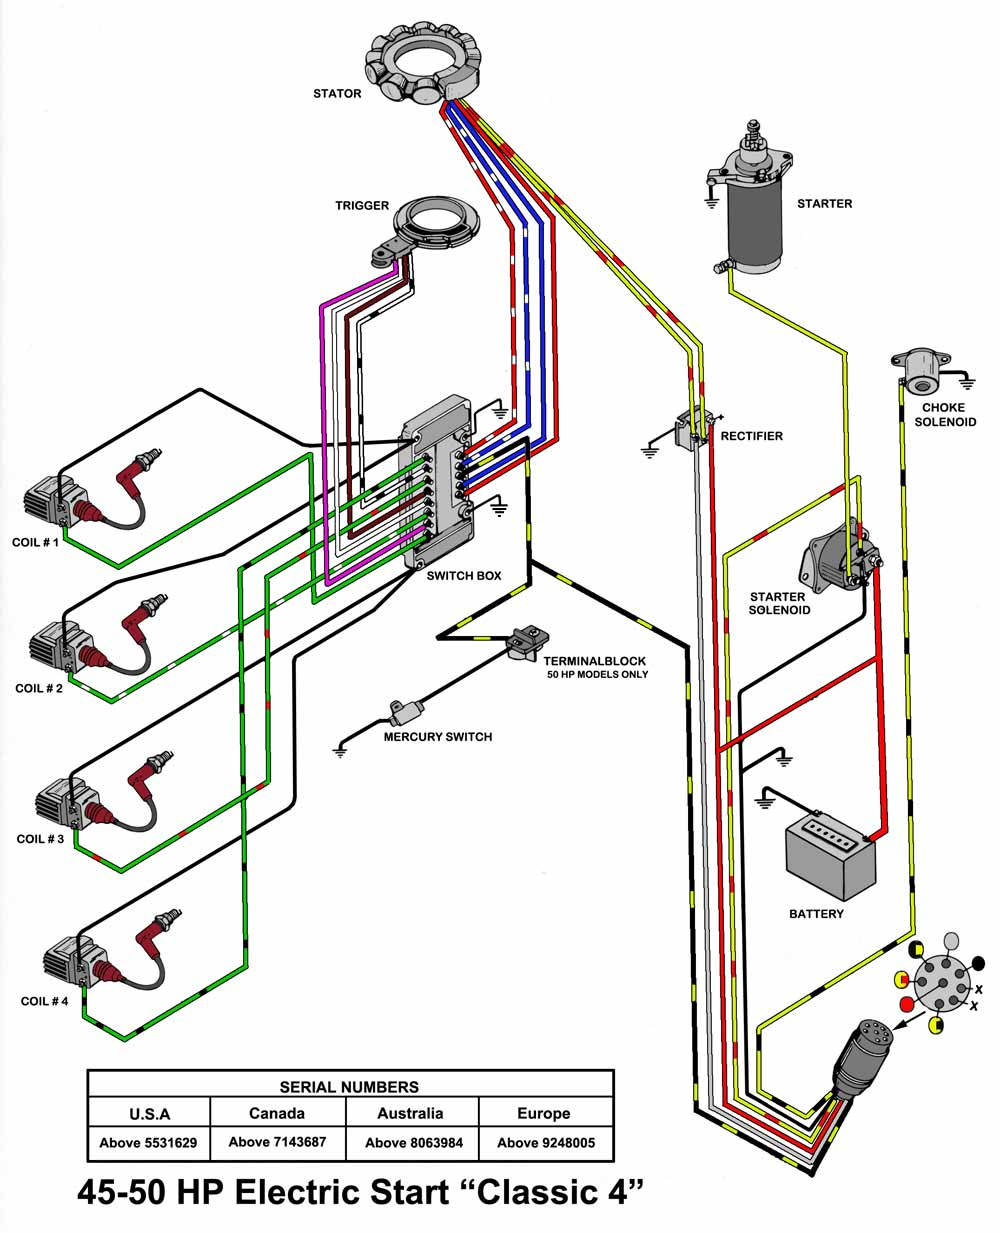 Mercury Wiring Diagrams Wiring Diagram Schemes 1983 Mercury Outboard Wiring  Diagram Schematic Mercury Outboard Wiring Diagram Schematic